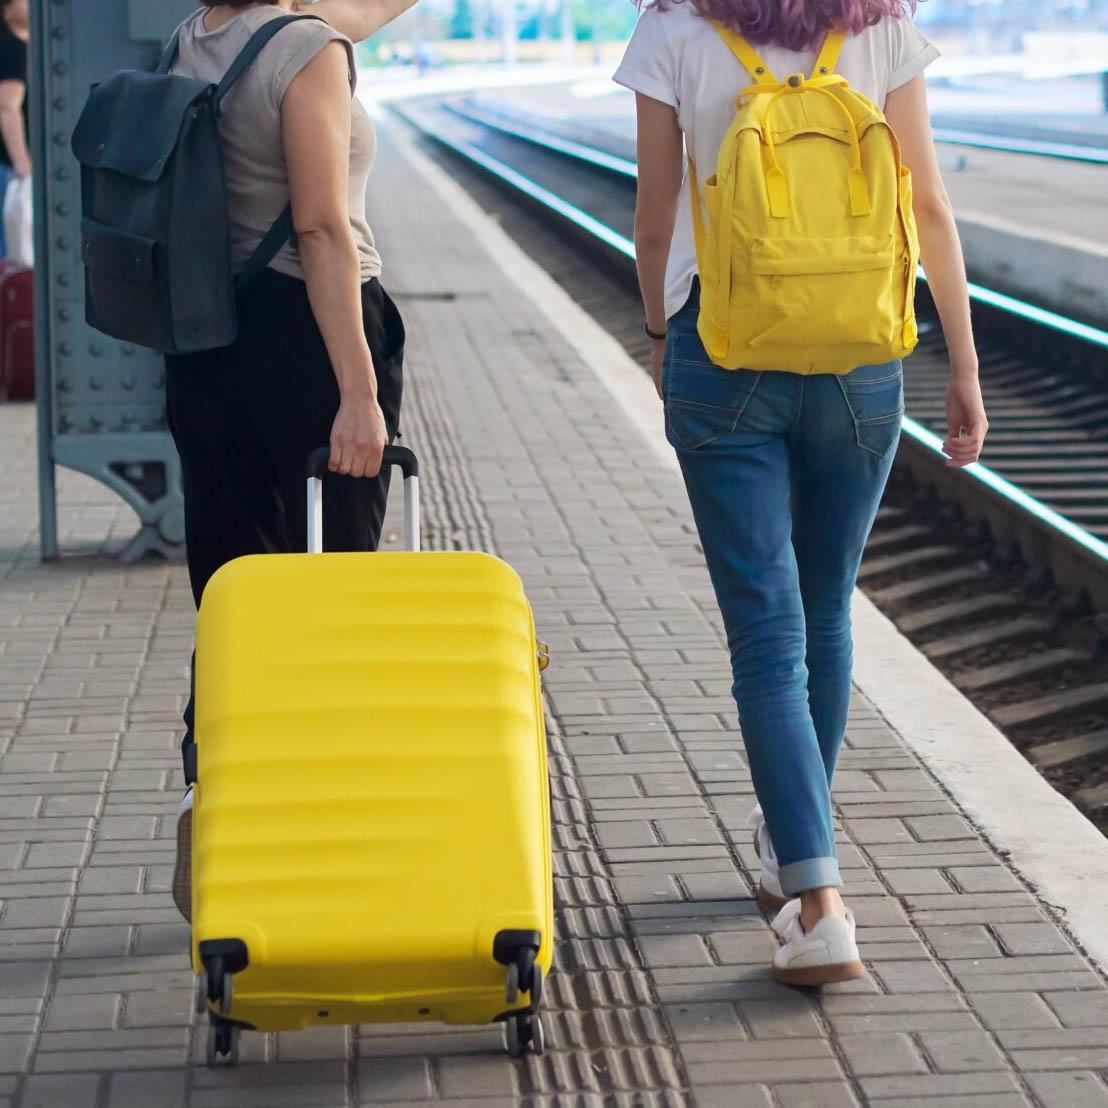 Two women walking in a train station, one woman is rolling a yellow suitcase and the other woman is carrying a yellow backpack, illustrating that even shy travelers need someone to talk with about travel.